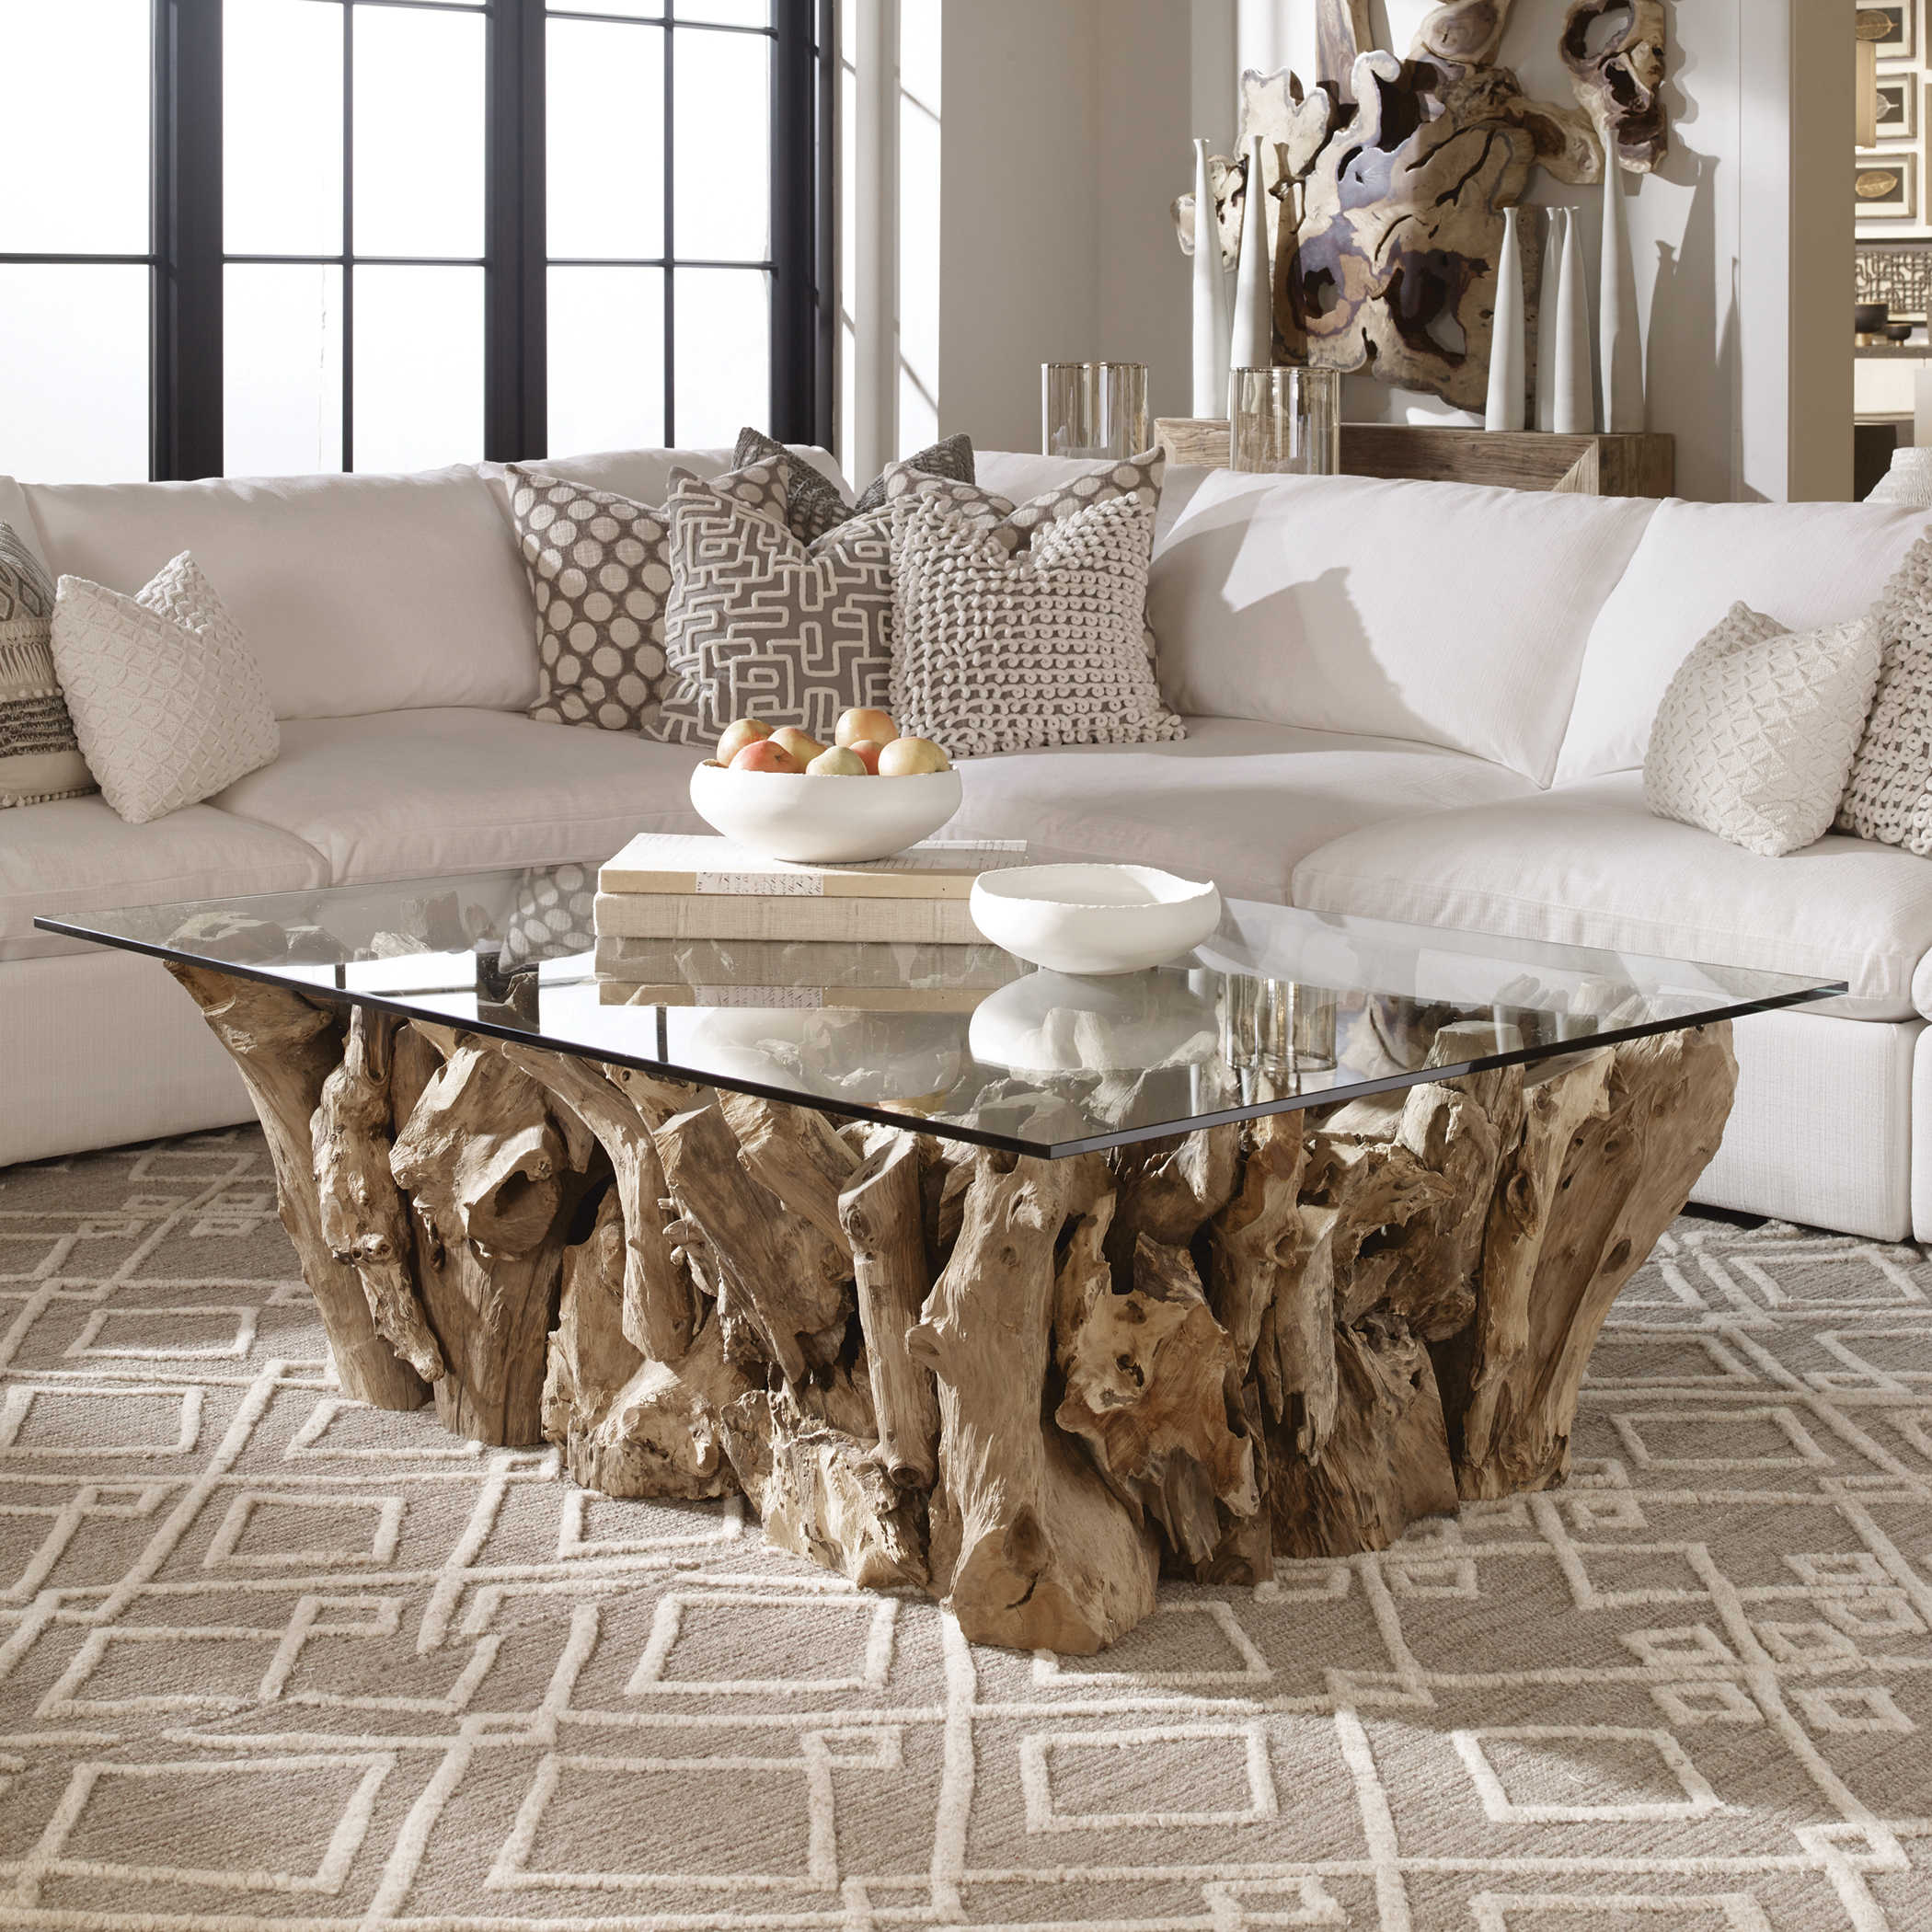 Magnificent Teak Root Coffee Table Download Free Architecture Designs Scobabritishbridgeorg